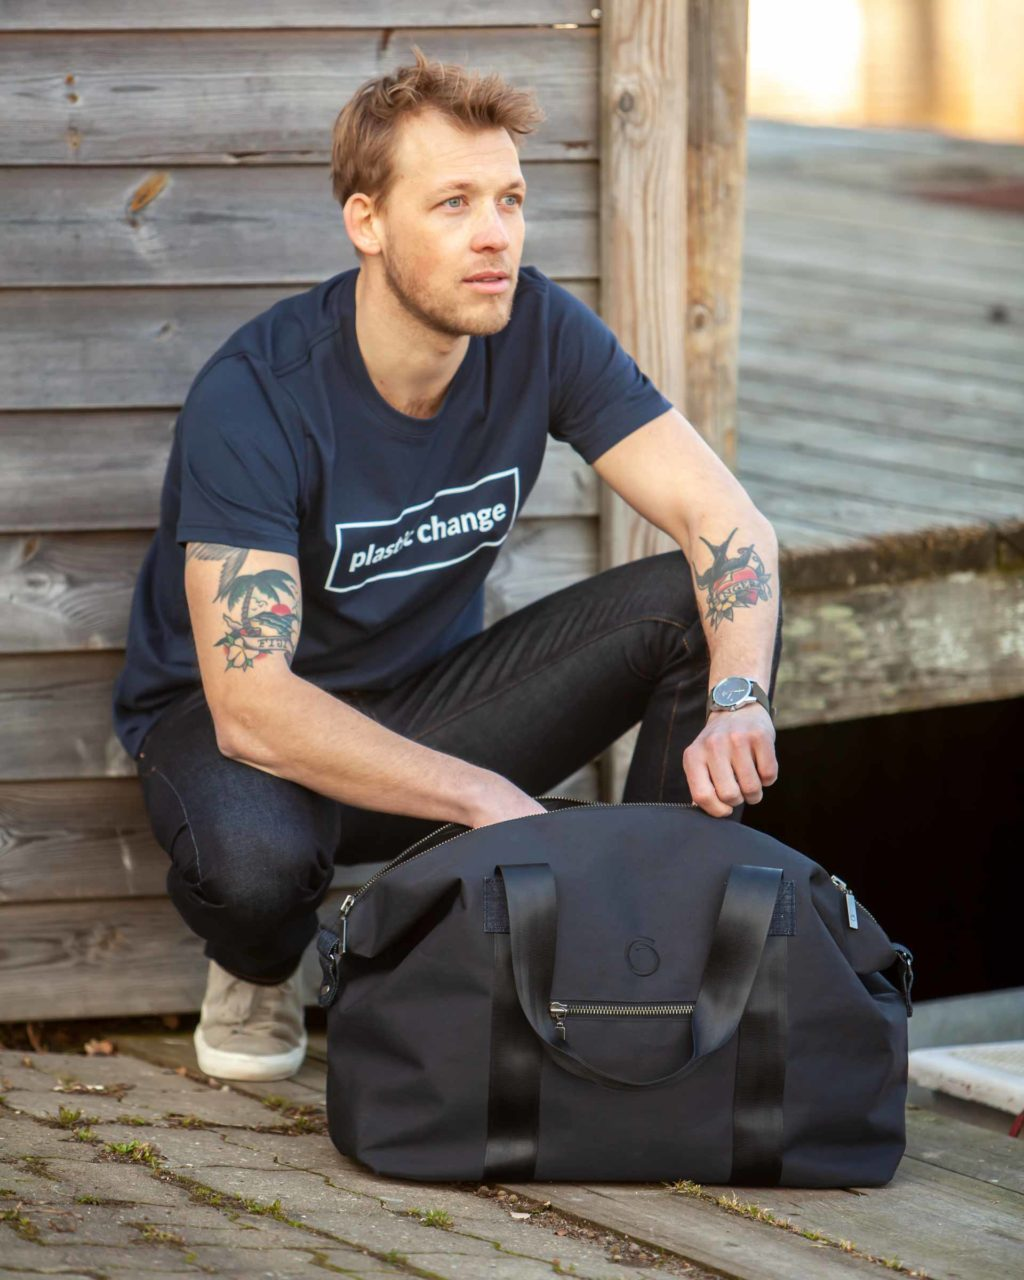 Model sitting next to the black Weekend Bag with one hand inside the bag